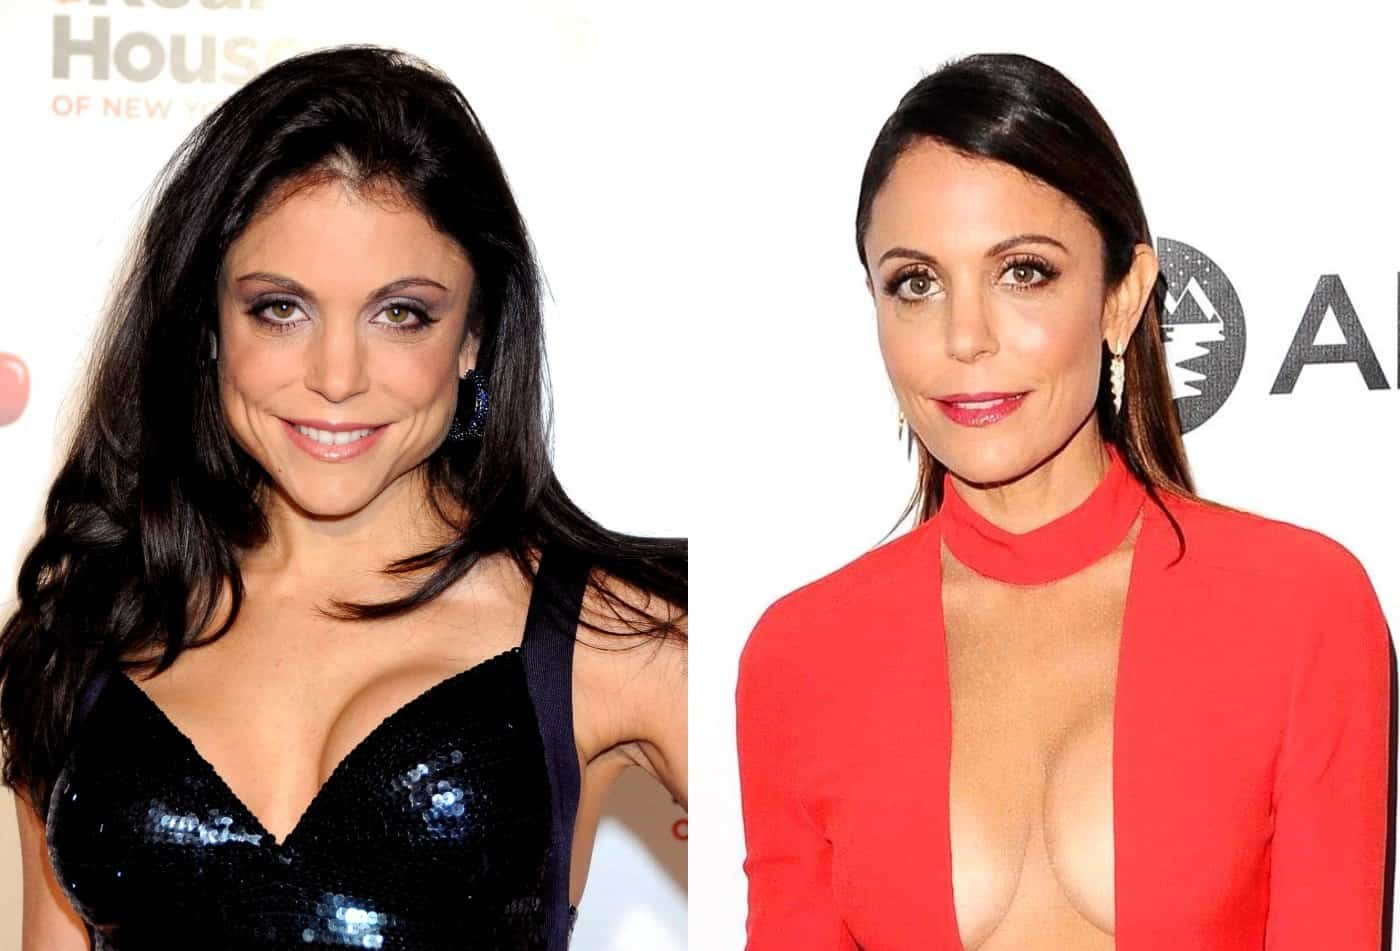 RHONY's Bethenny Frankel's Before and After Photos! She Reveals Plastic Surgery